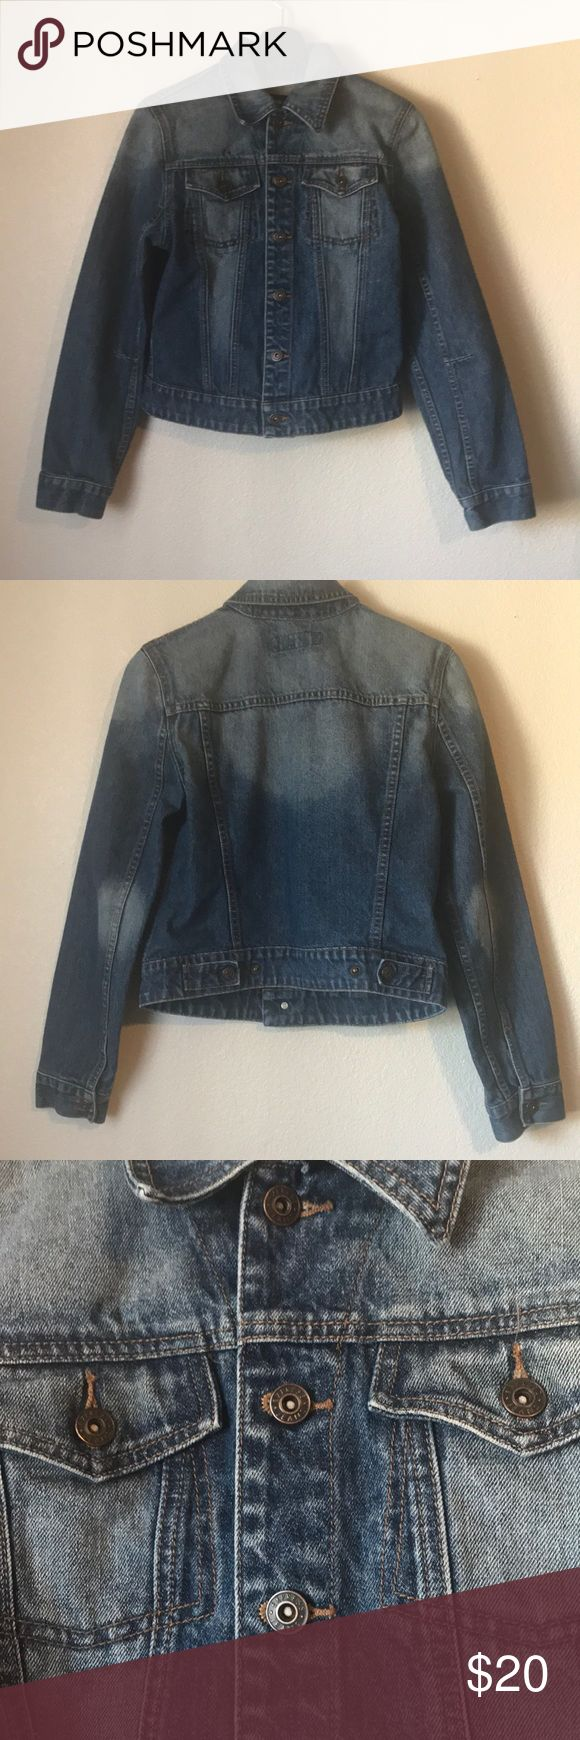 Express Men's short Jean jacket Express mens short Jean jacket. Size Medium. 18 inches across chest, 21 inches long. Excellent condition.  ** NO modeling or trades** Express Jackets & Coats